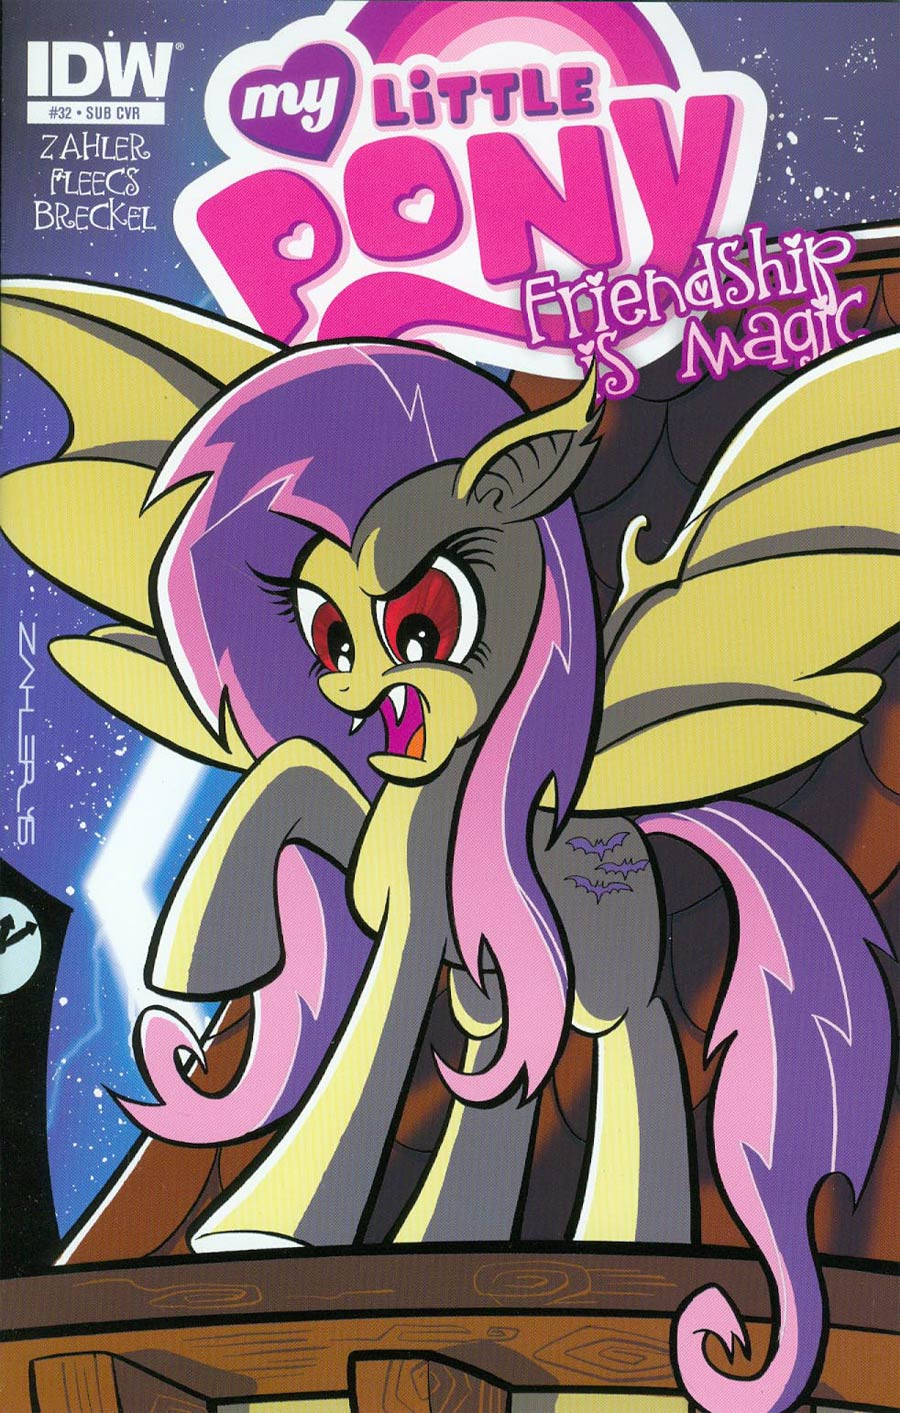 My Little Pony: Friendship Is Magic (2012) #32 Sub Variant cover by Thom Zahler.